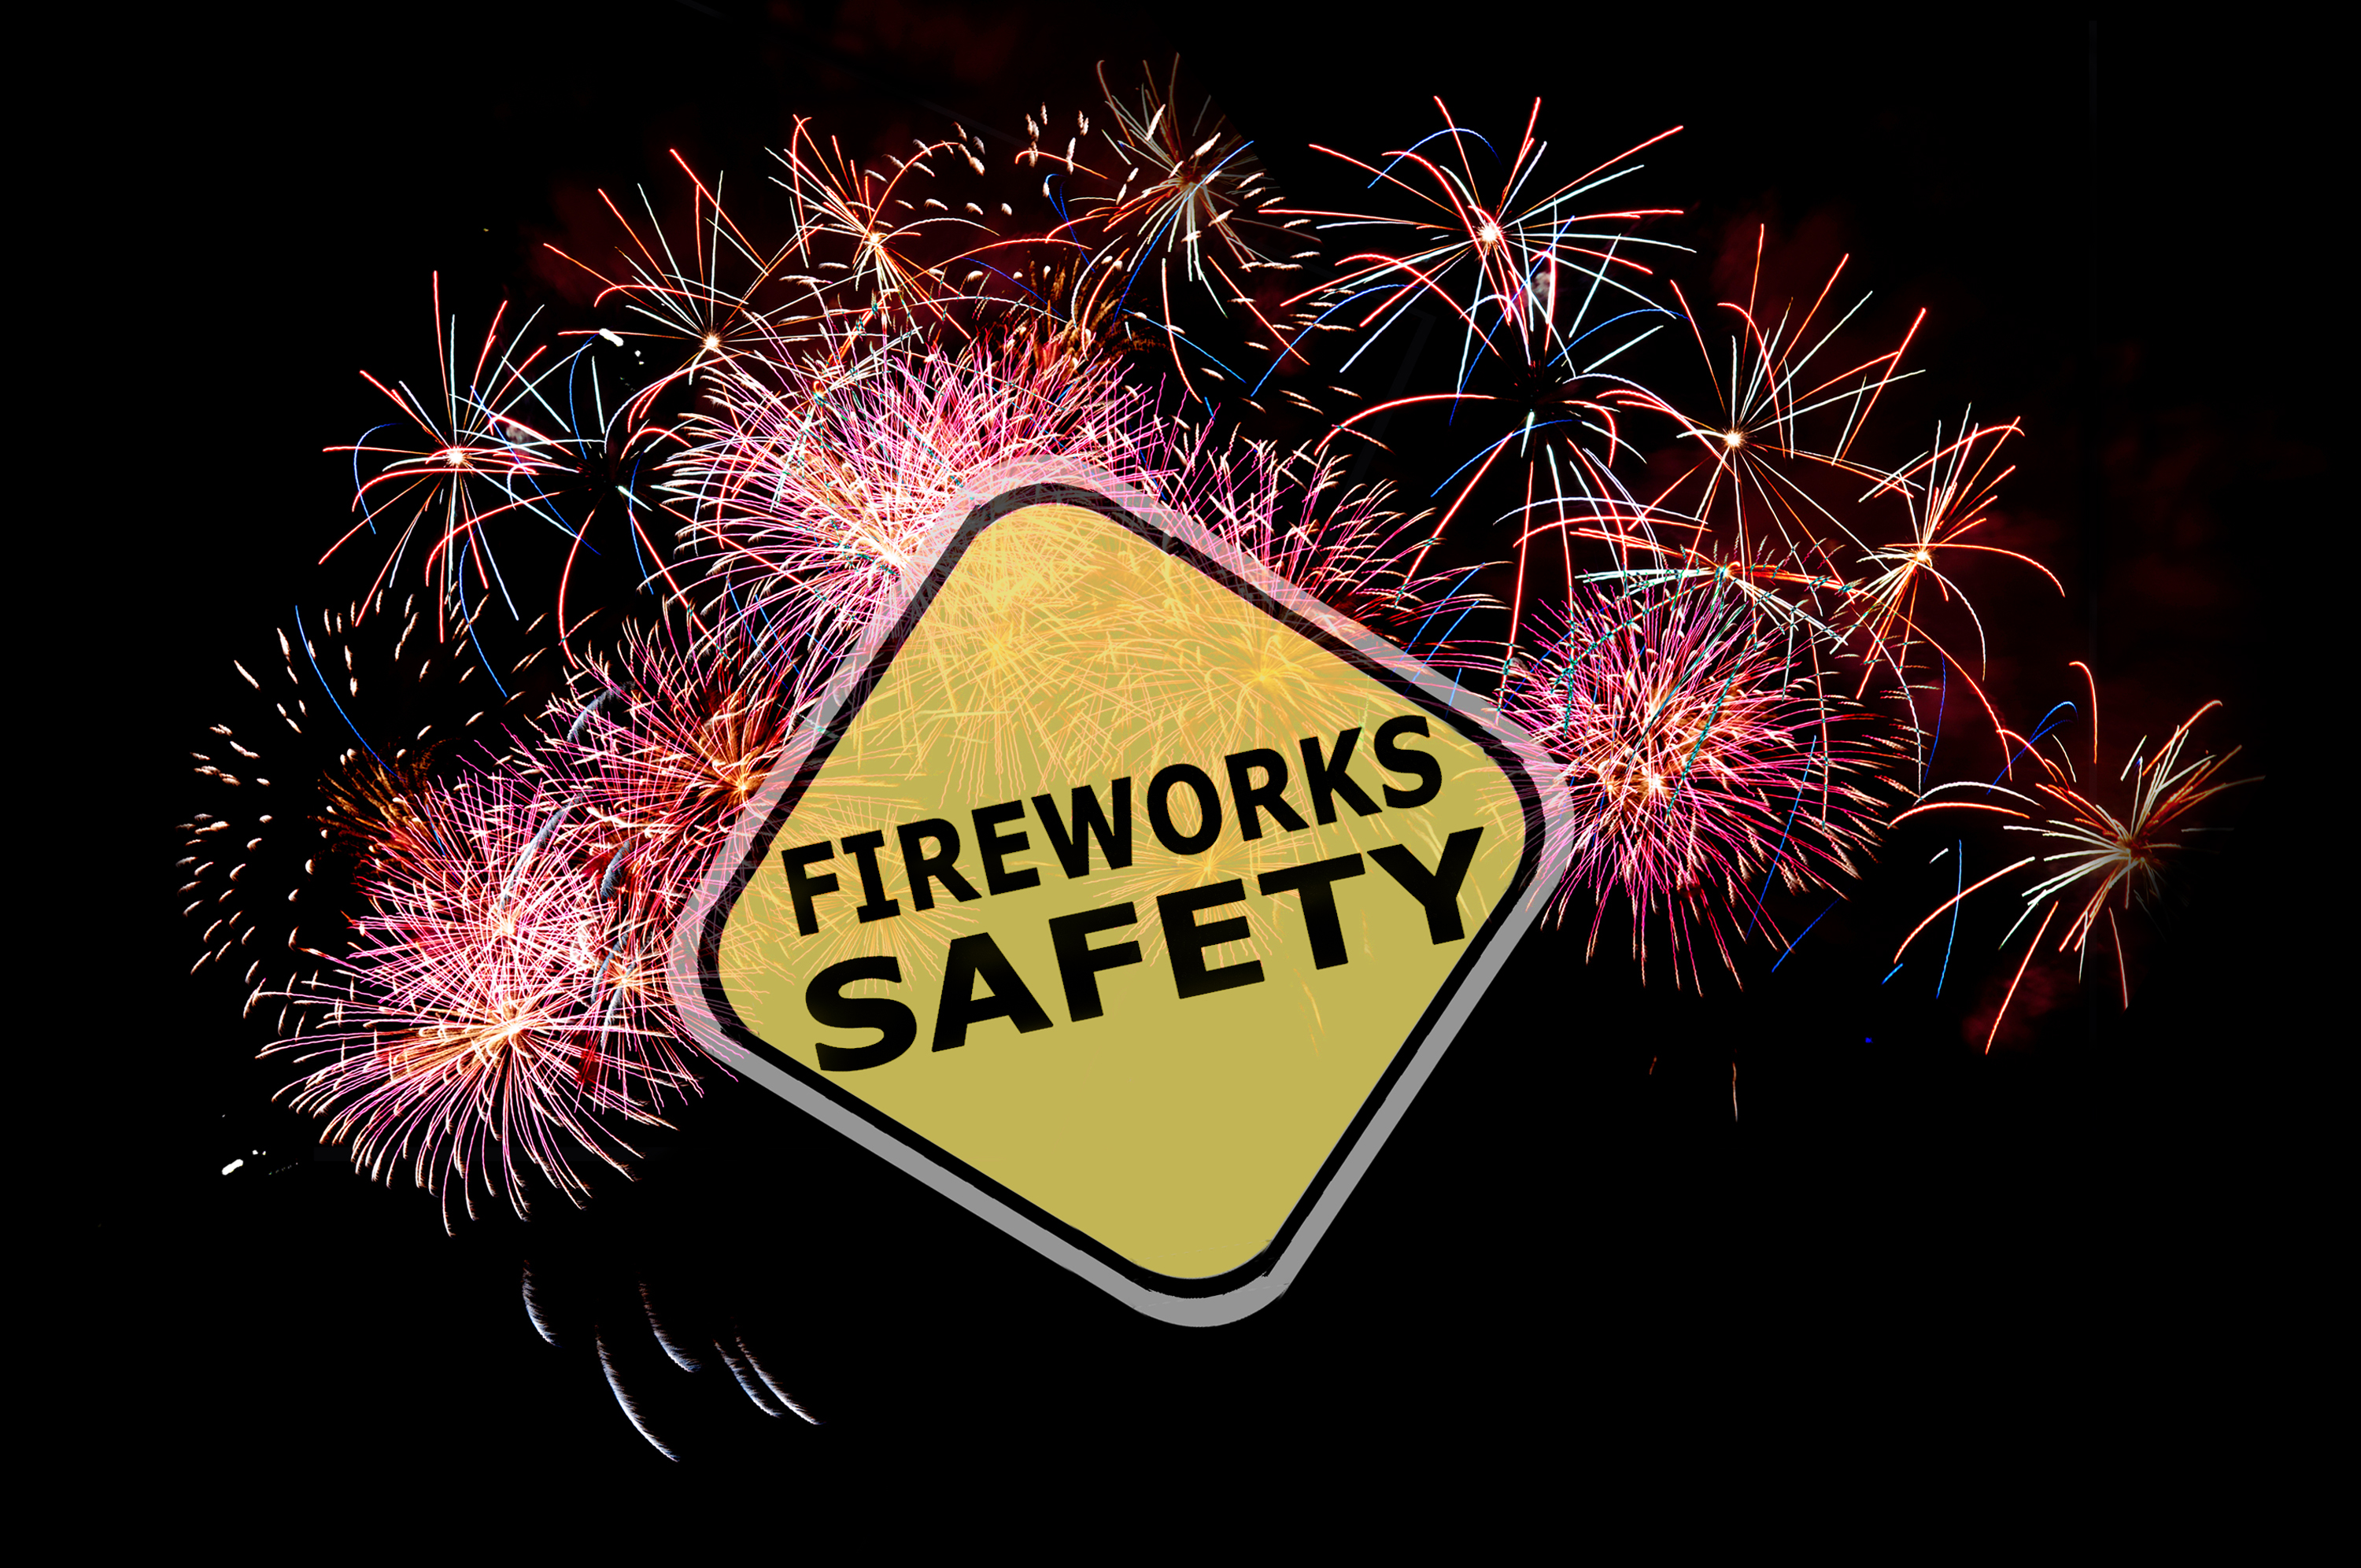 Michigan Physicians Remind Families to Enjoy 4th of July